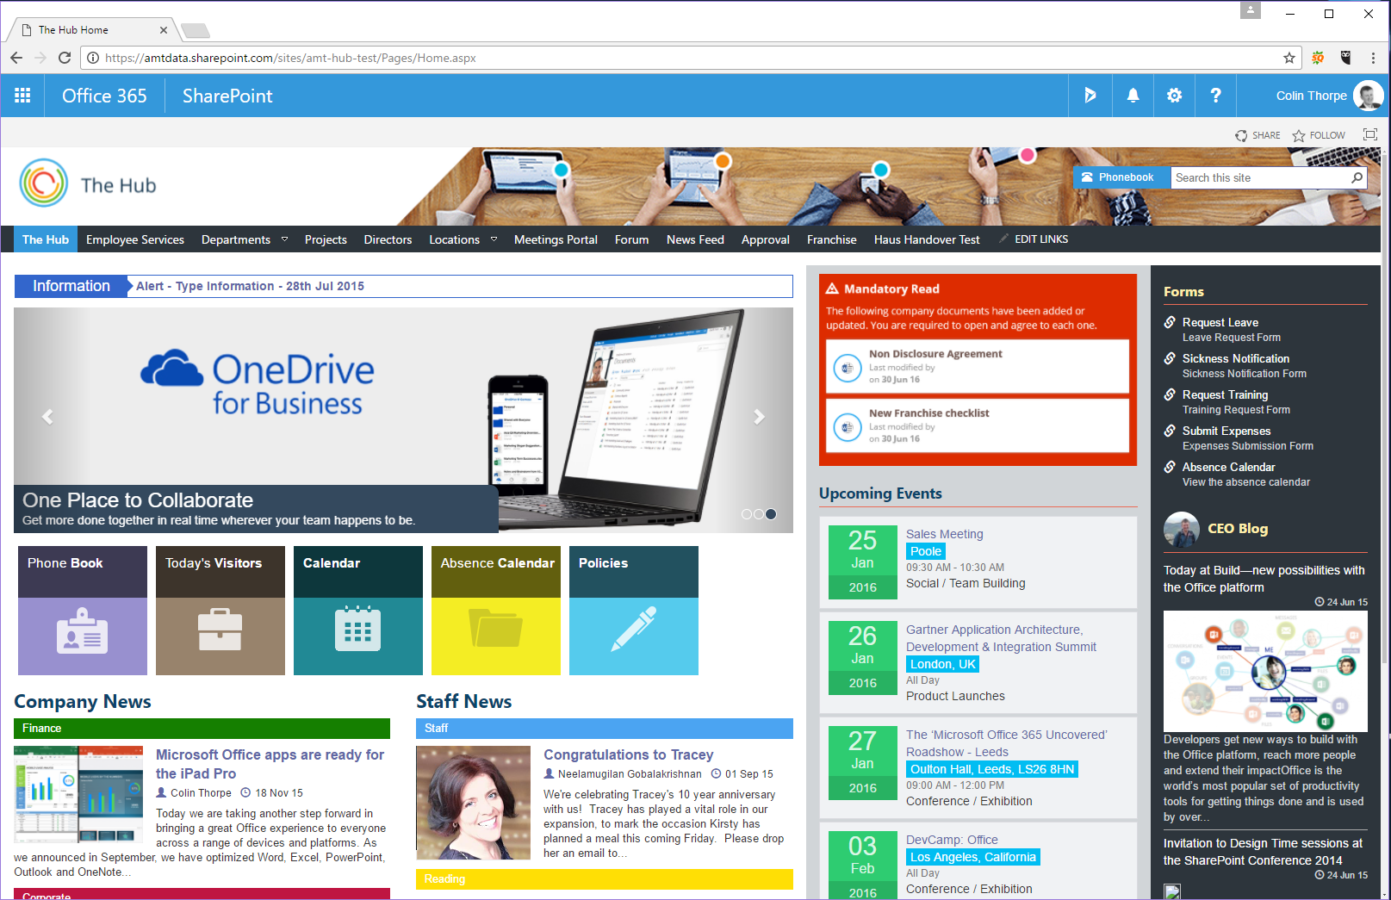 SharePoint-intranet-hub-home-page